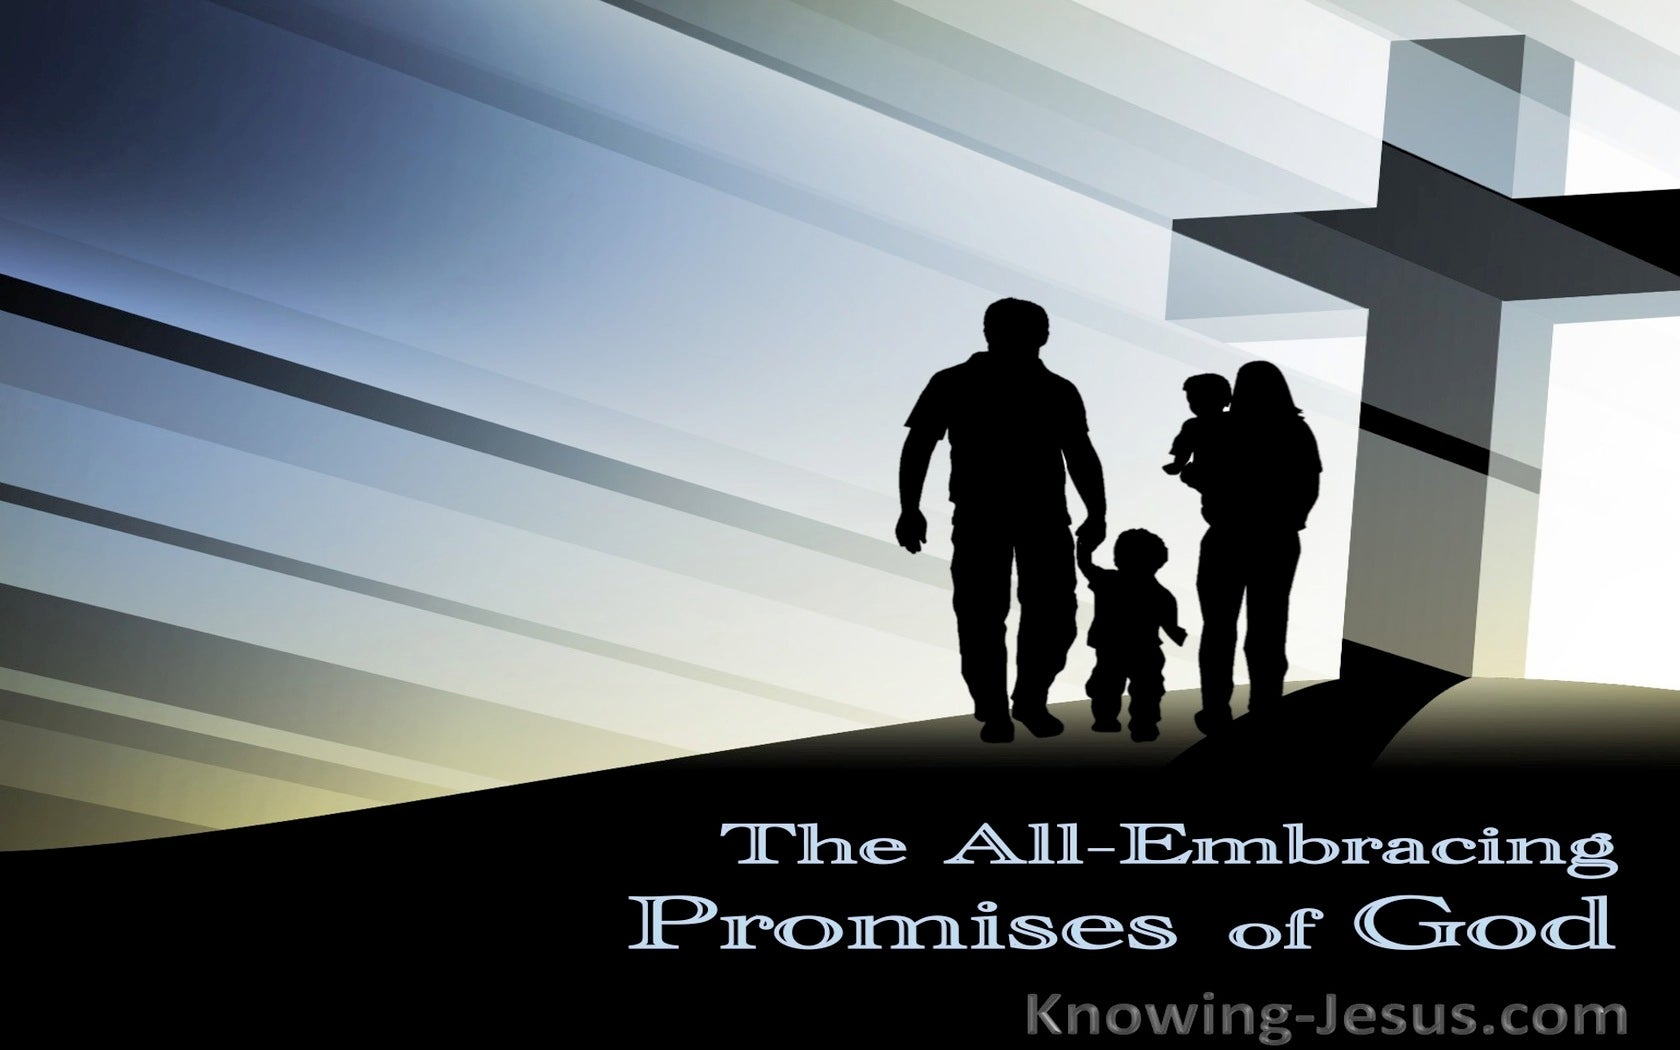 The All-Embracing Promises of God (devotional)